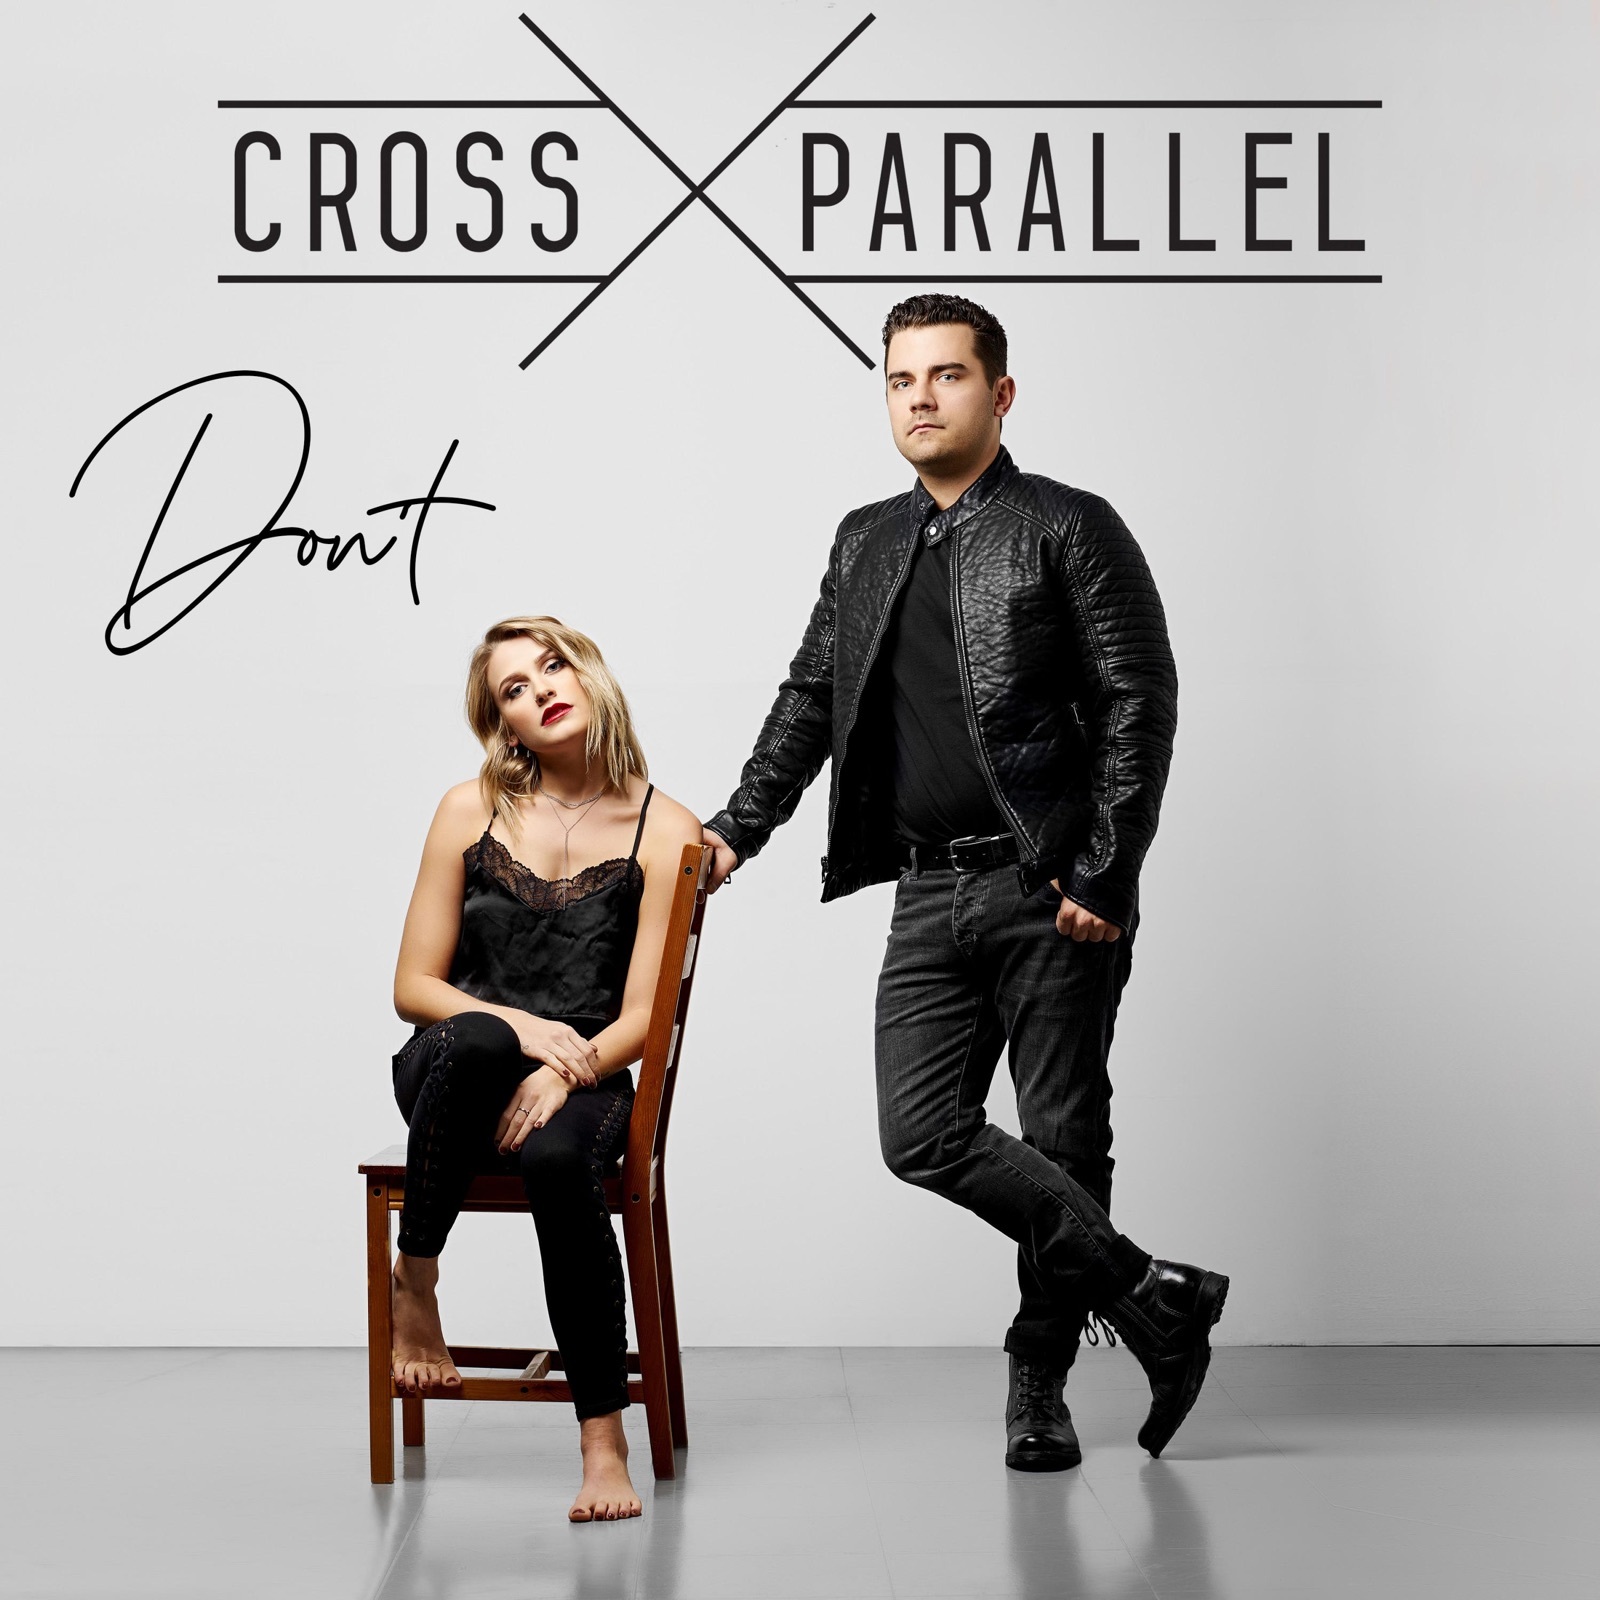 Cross Parallel (Don't)